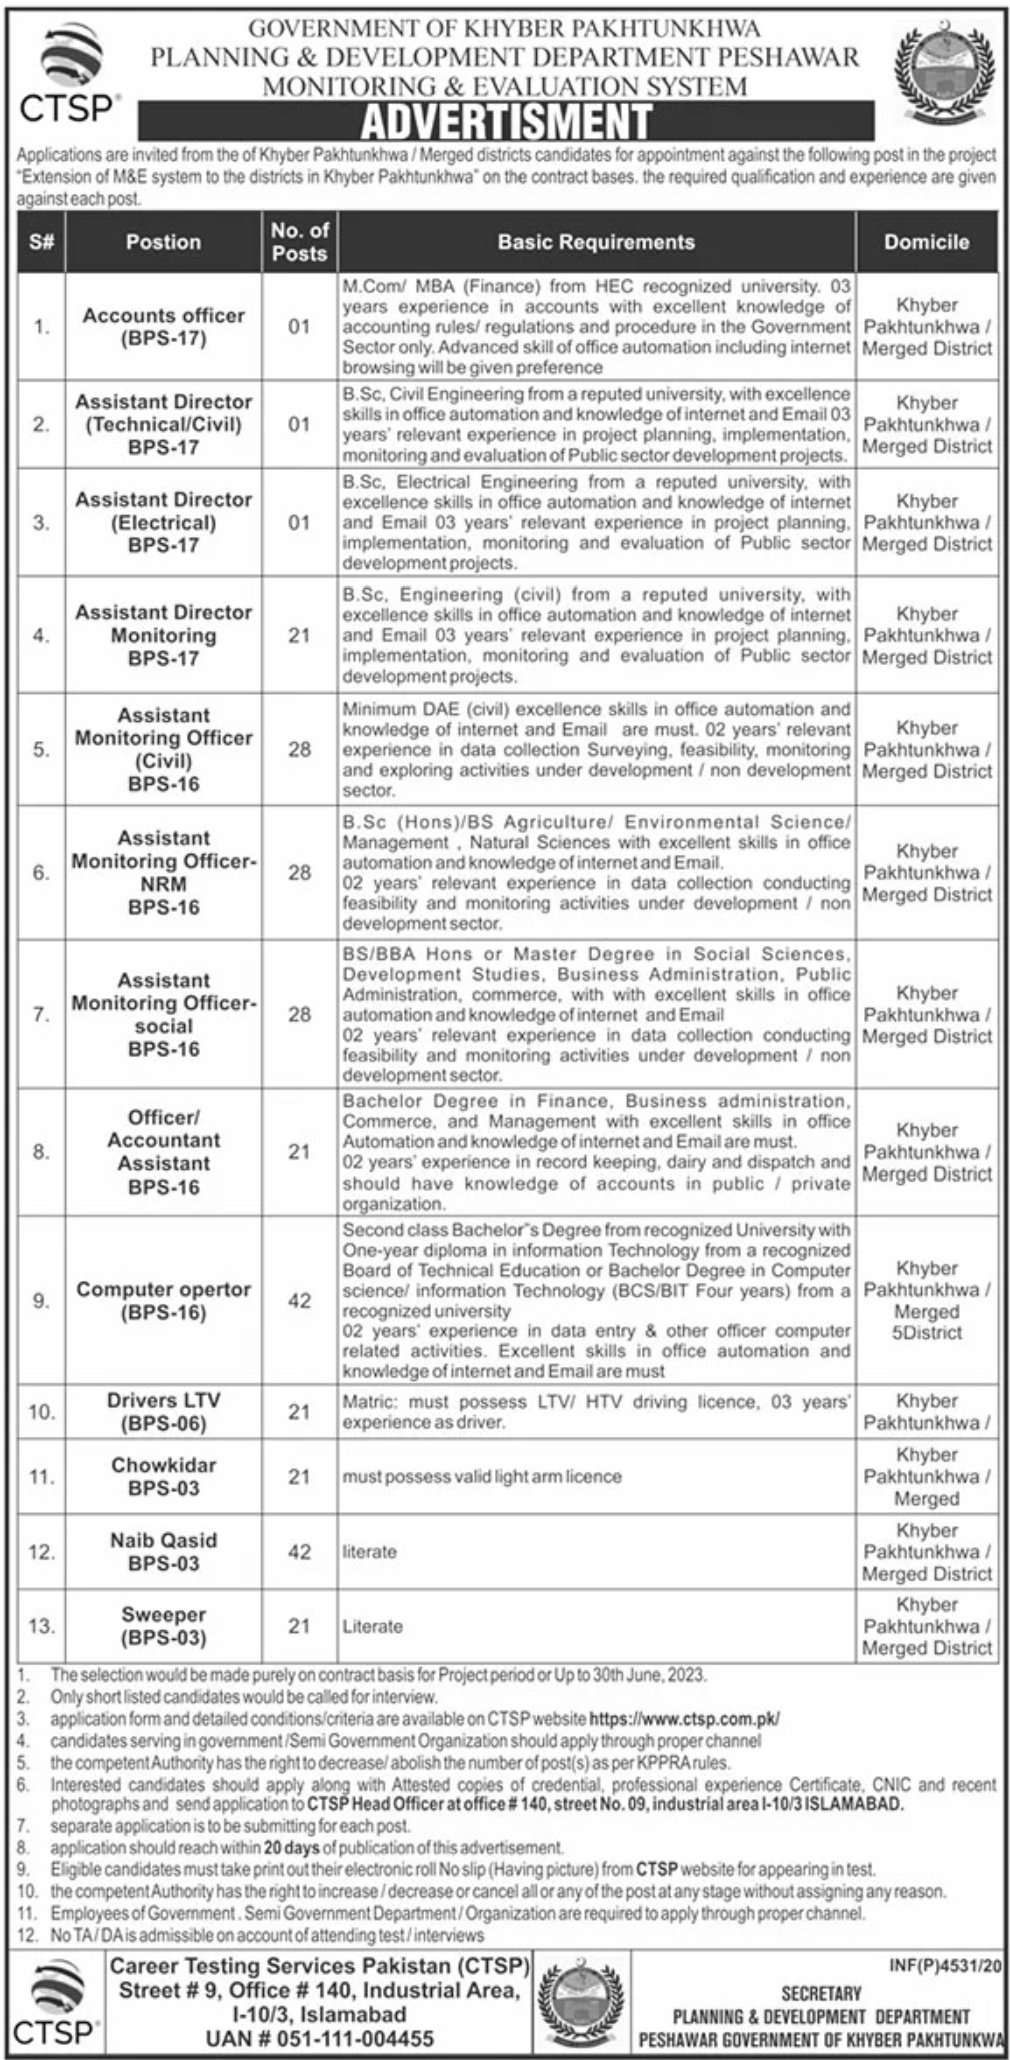 Government of Khyber Pakhtunkhwa Planning & Development Department Peshawar Monitoring & Evaluation System Jobs November 2020